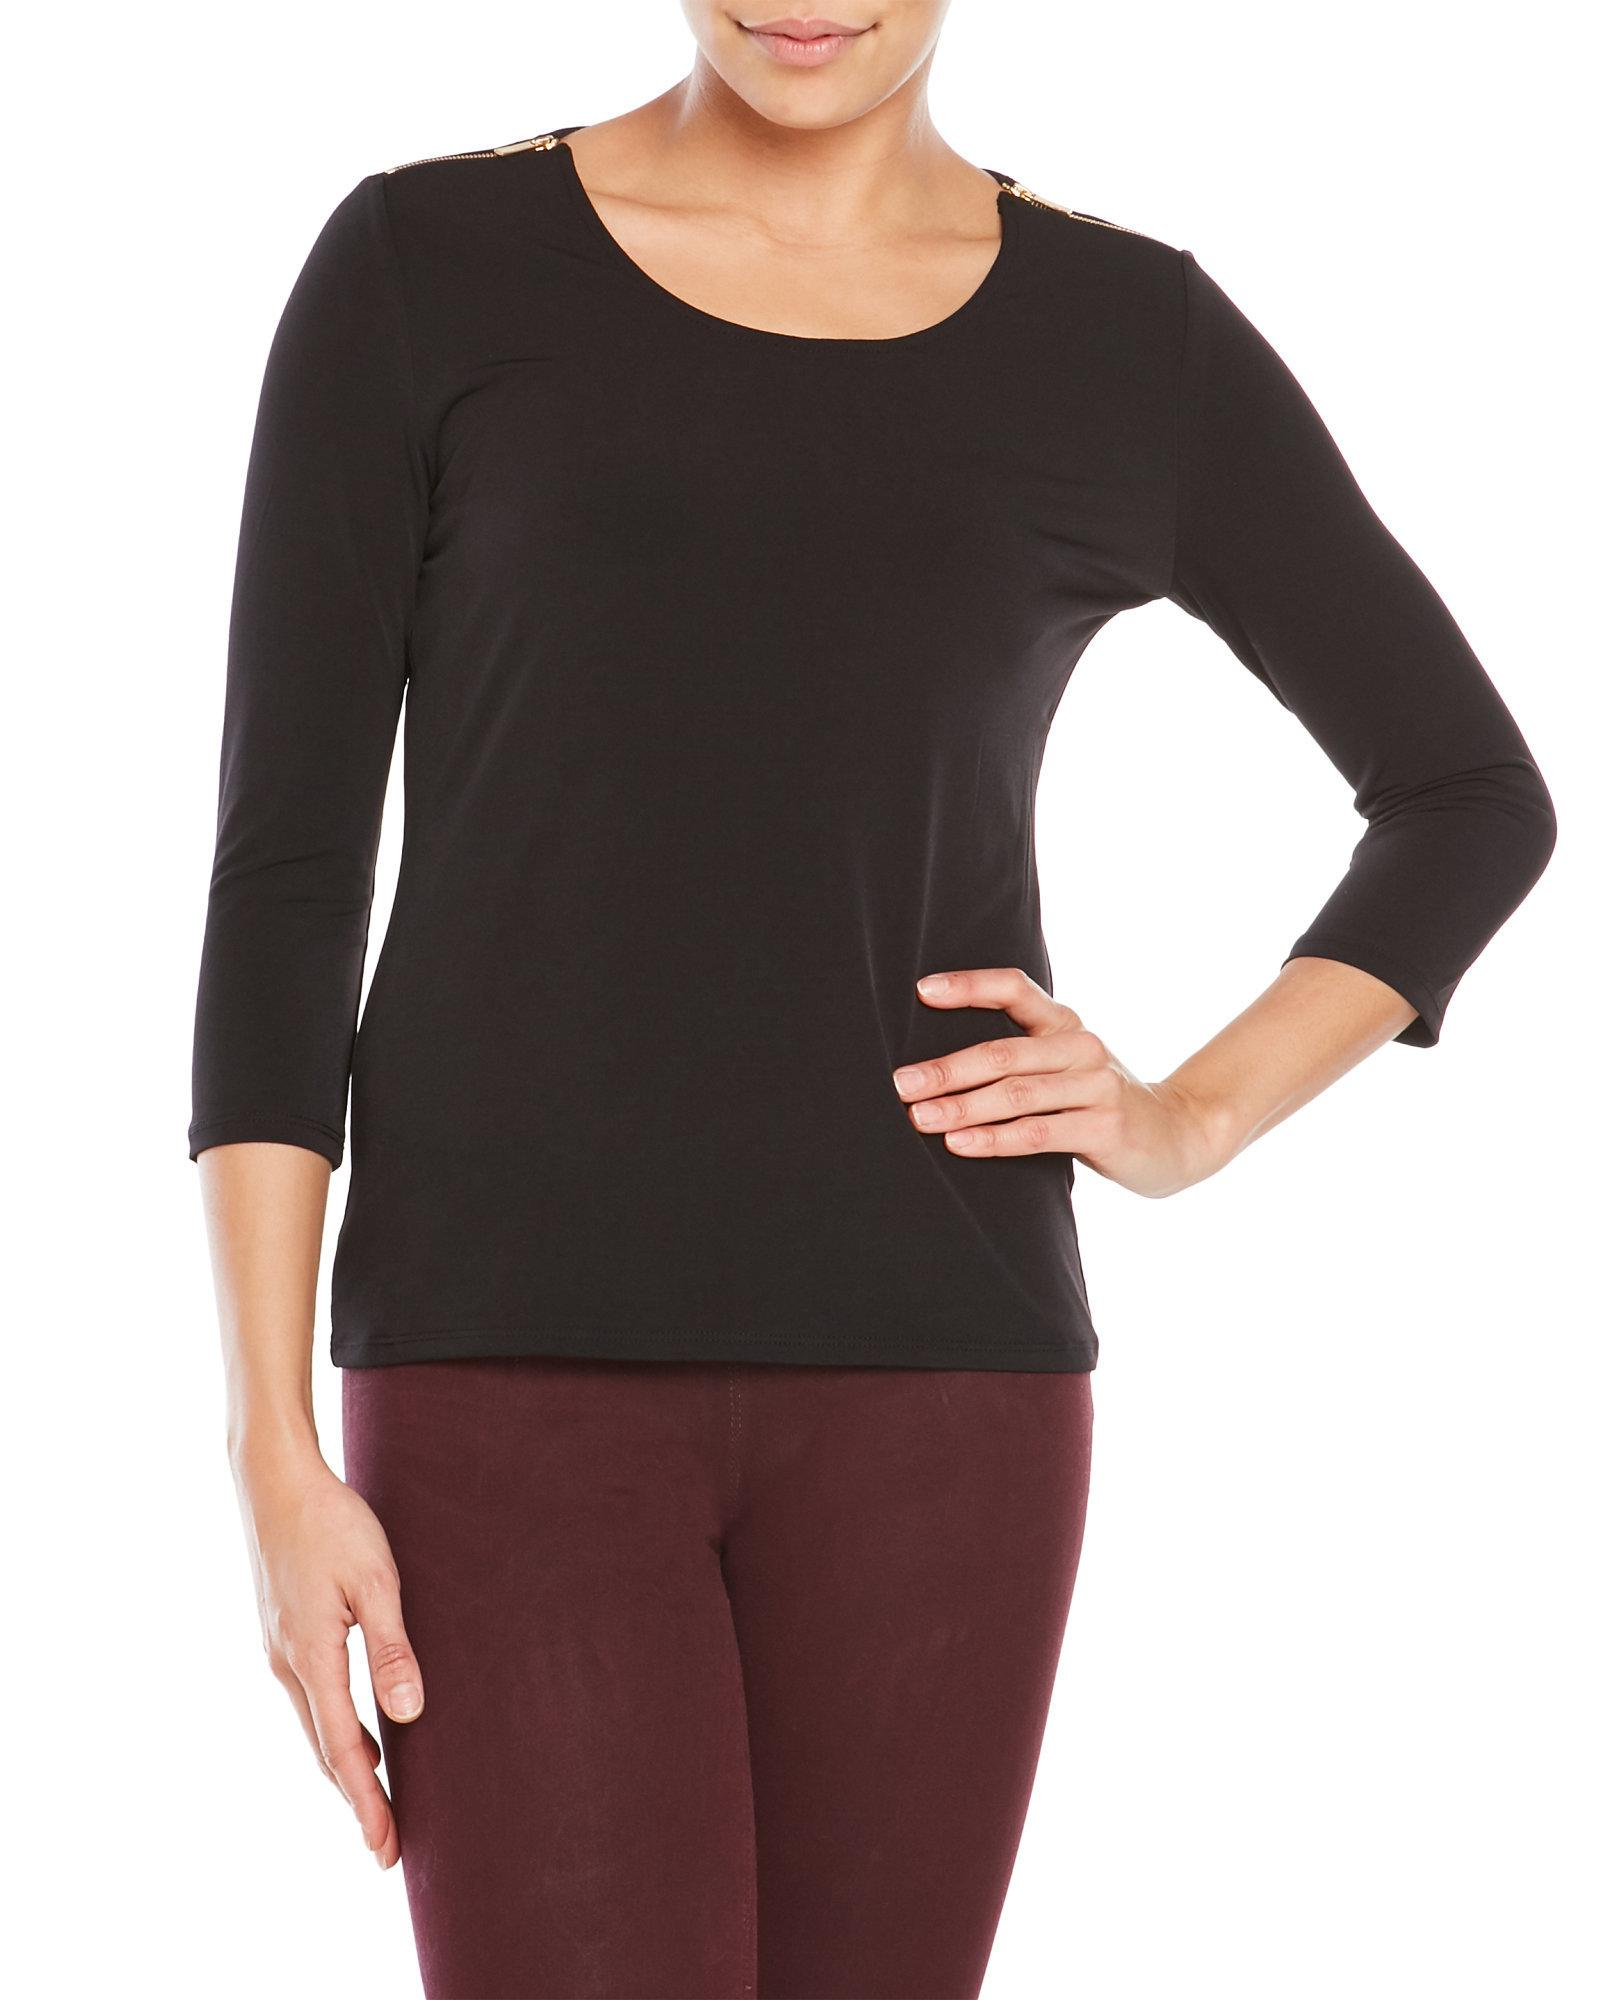 Premise Studio Top With Zippered Shoulders In Black Lyst